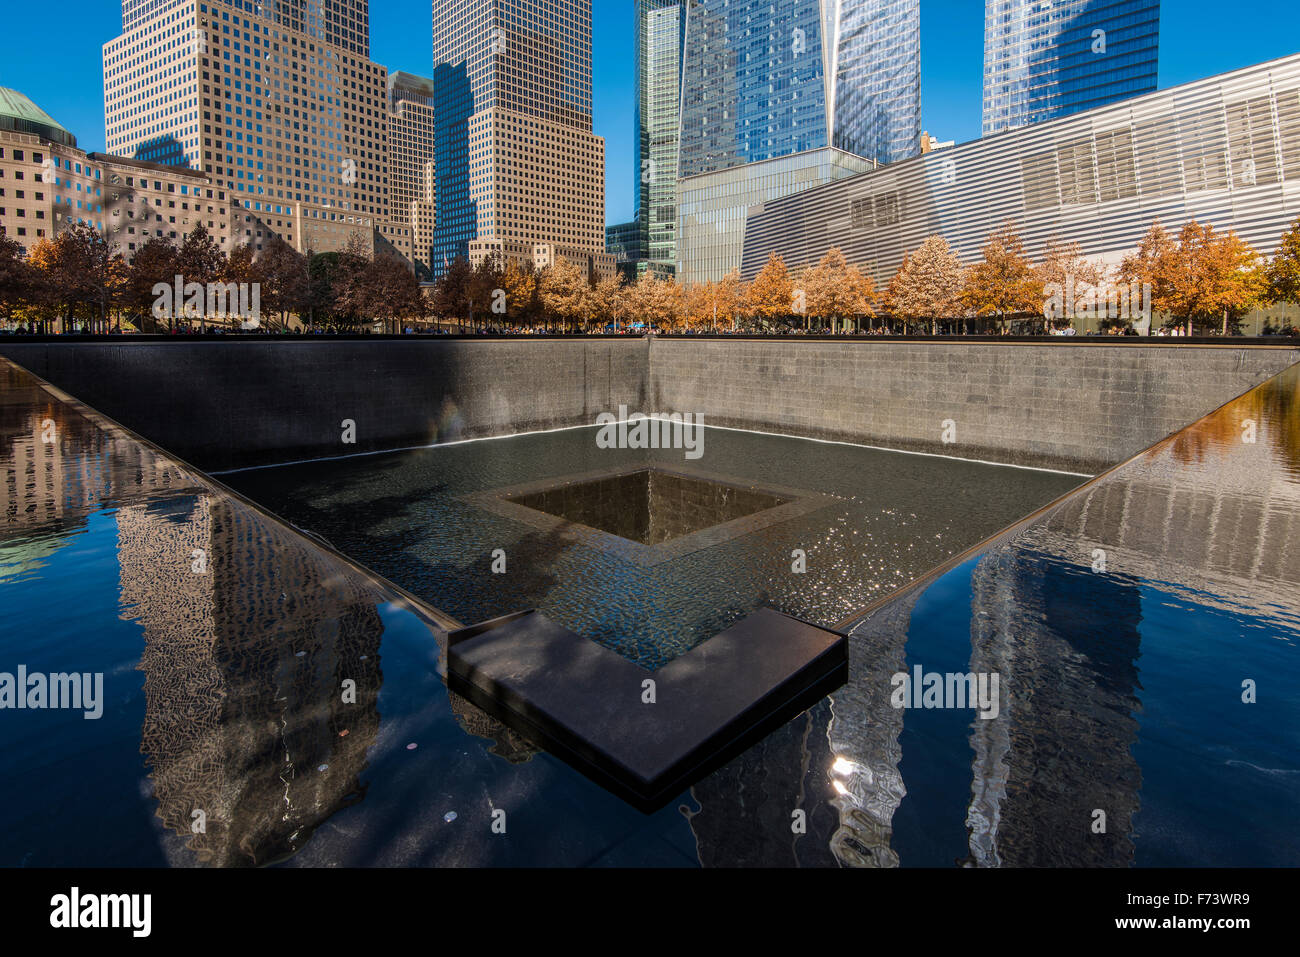 Southern Pool of National September 11 Memorial & Museum with One World Trade Center behind, Lower Manhattan, - Stock Image